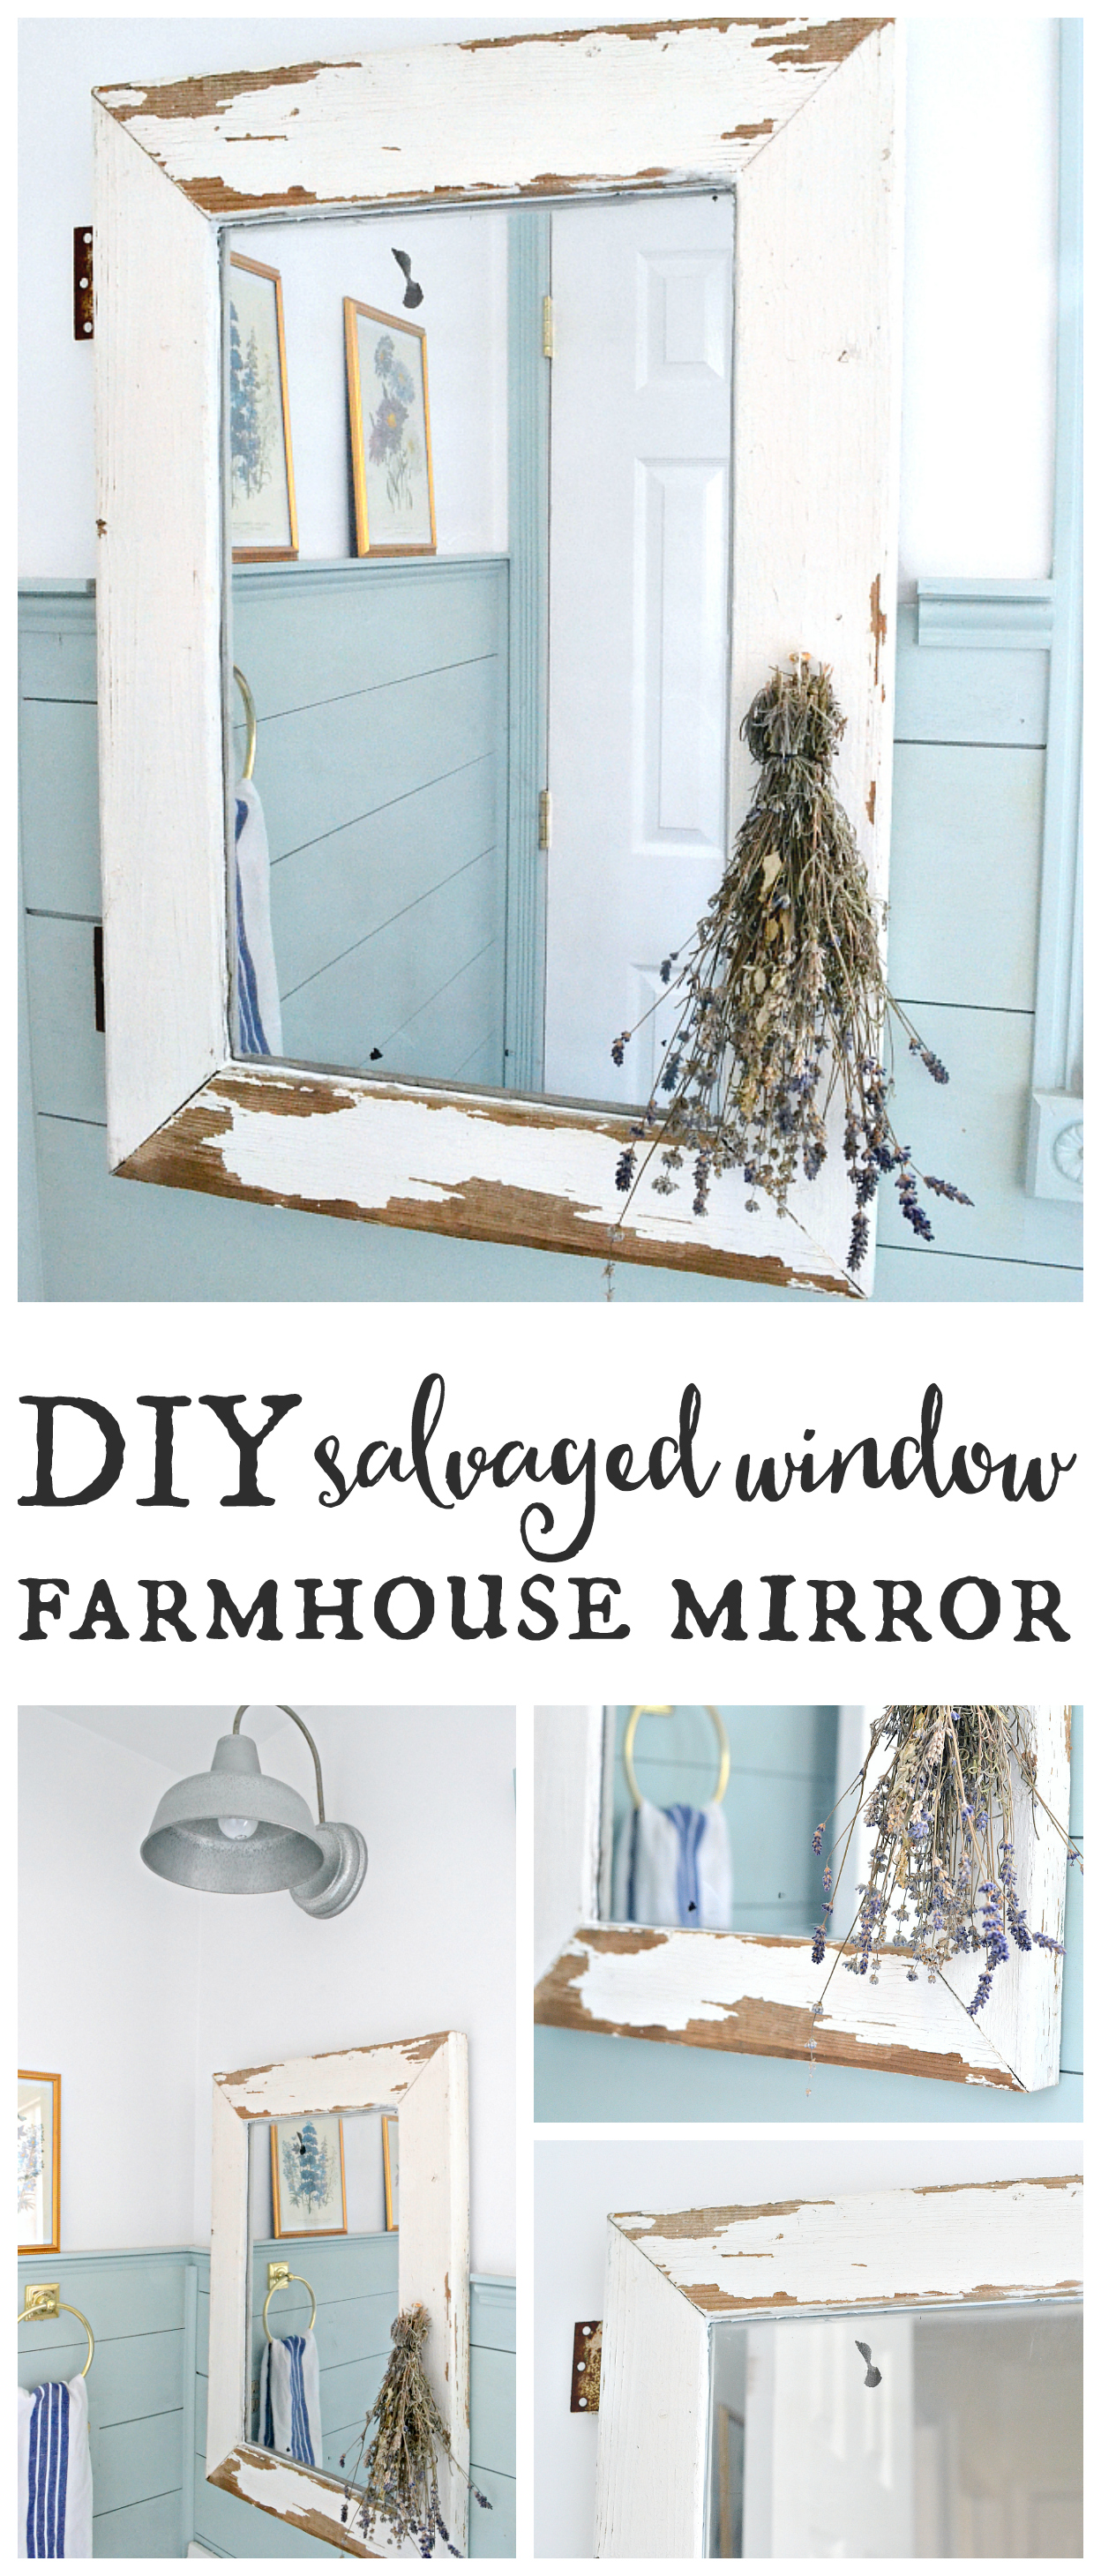 Salvaged window farmhouse mirror. Turn a salvaged window into a farmhouse mirror in just a few easy steps! Find it on theweatheredfox.com